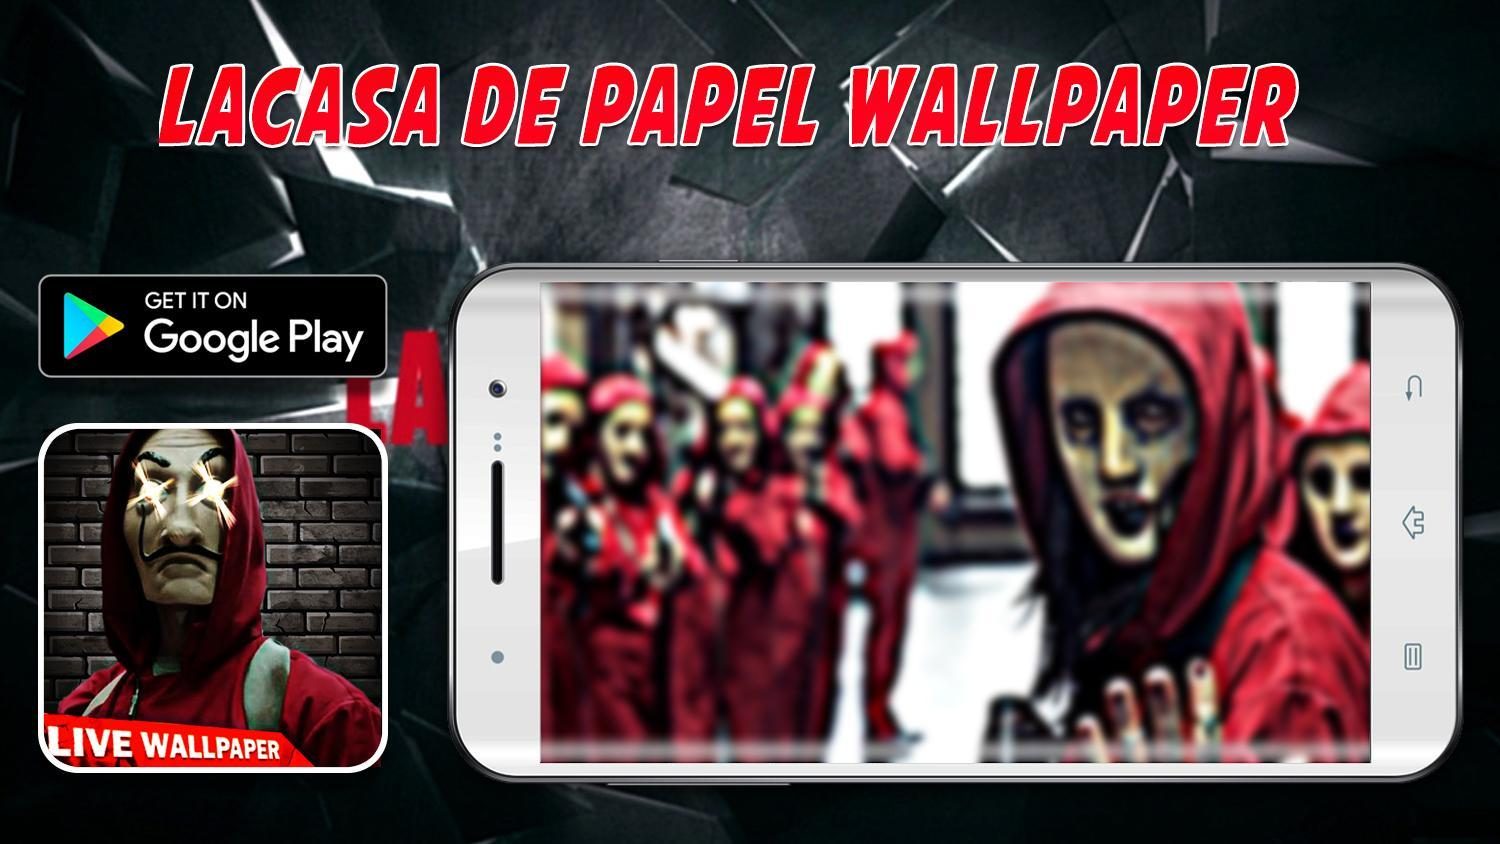 La Casa Fanart De Papel Wallpapers 4k For Android Apk Download